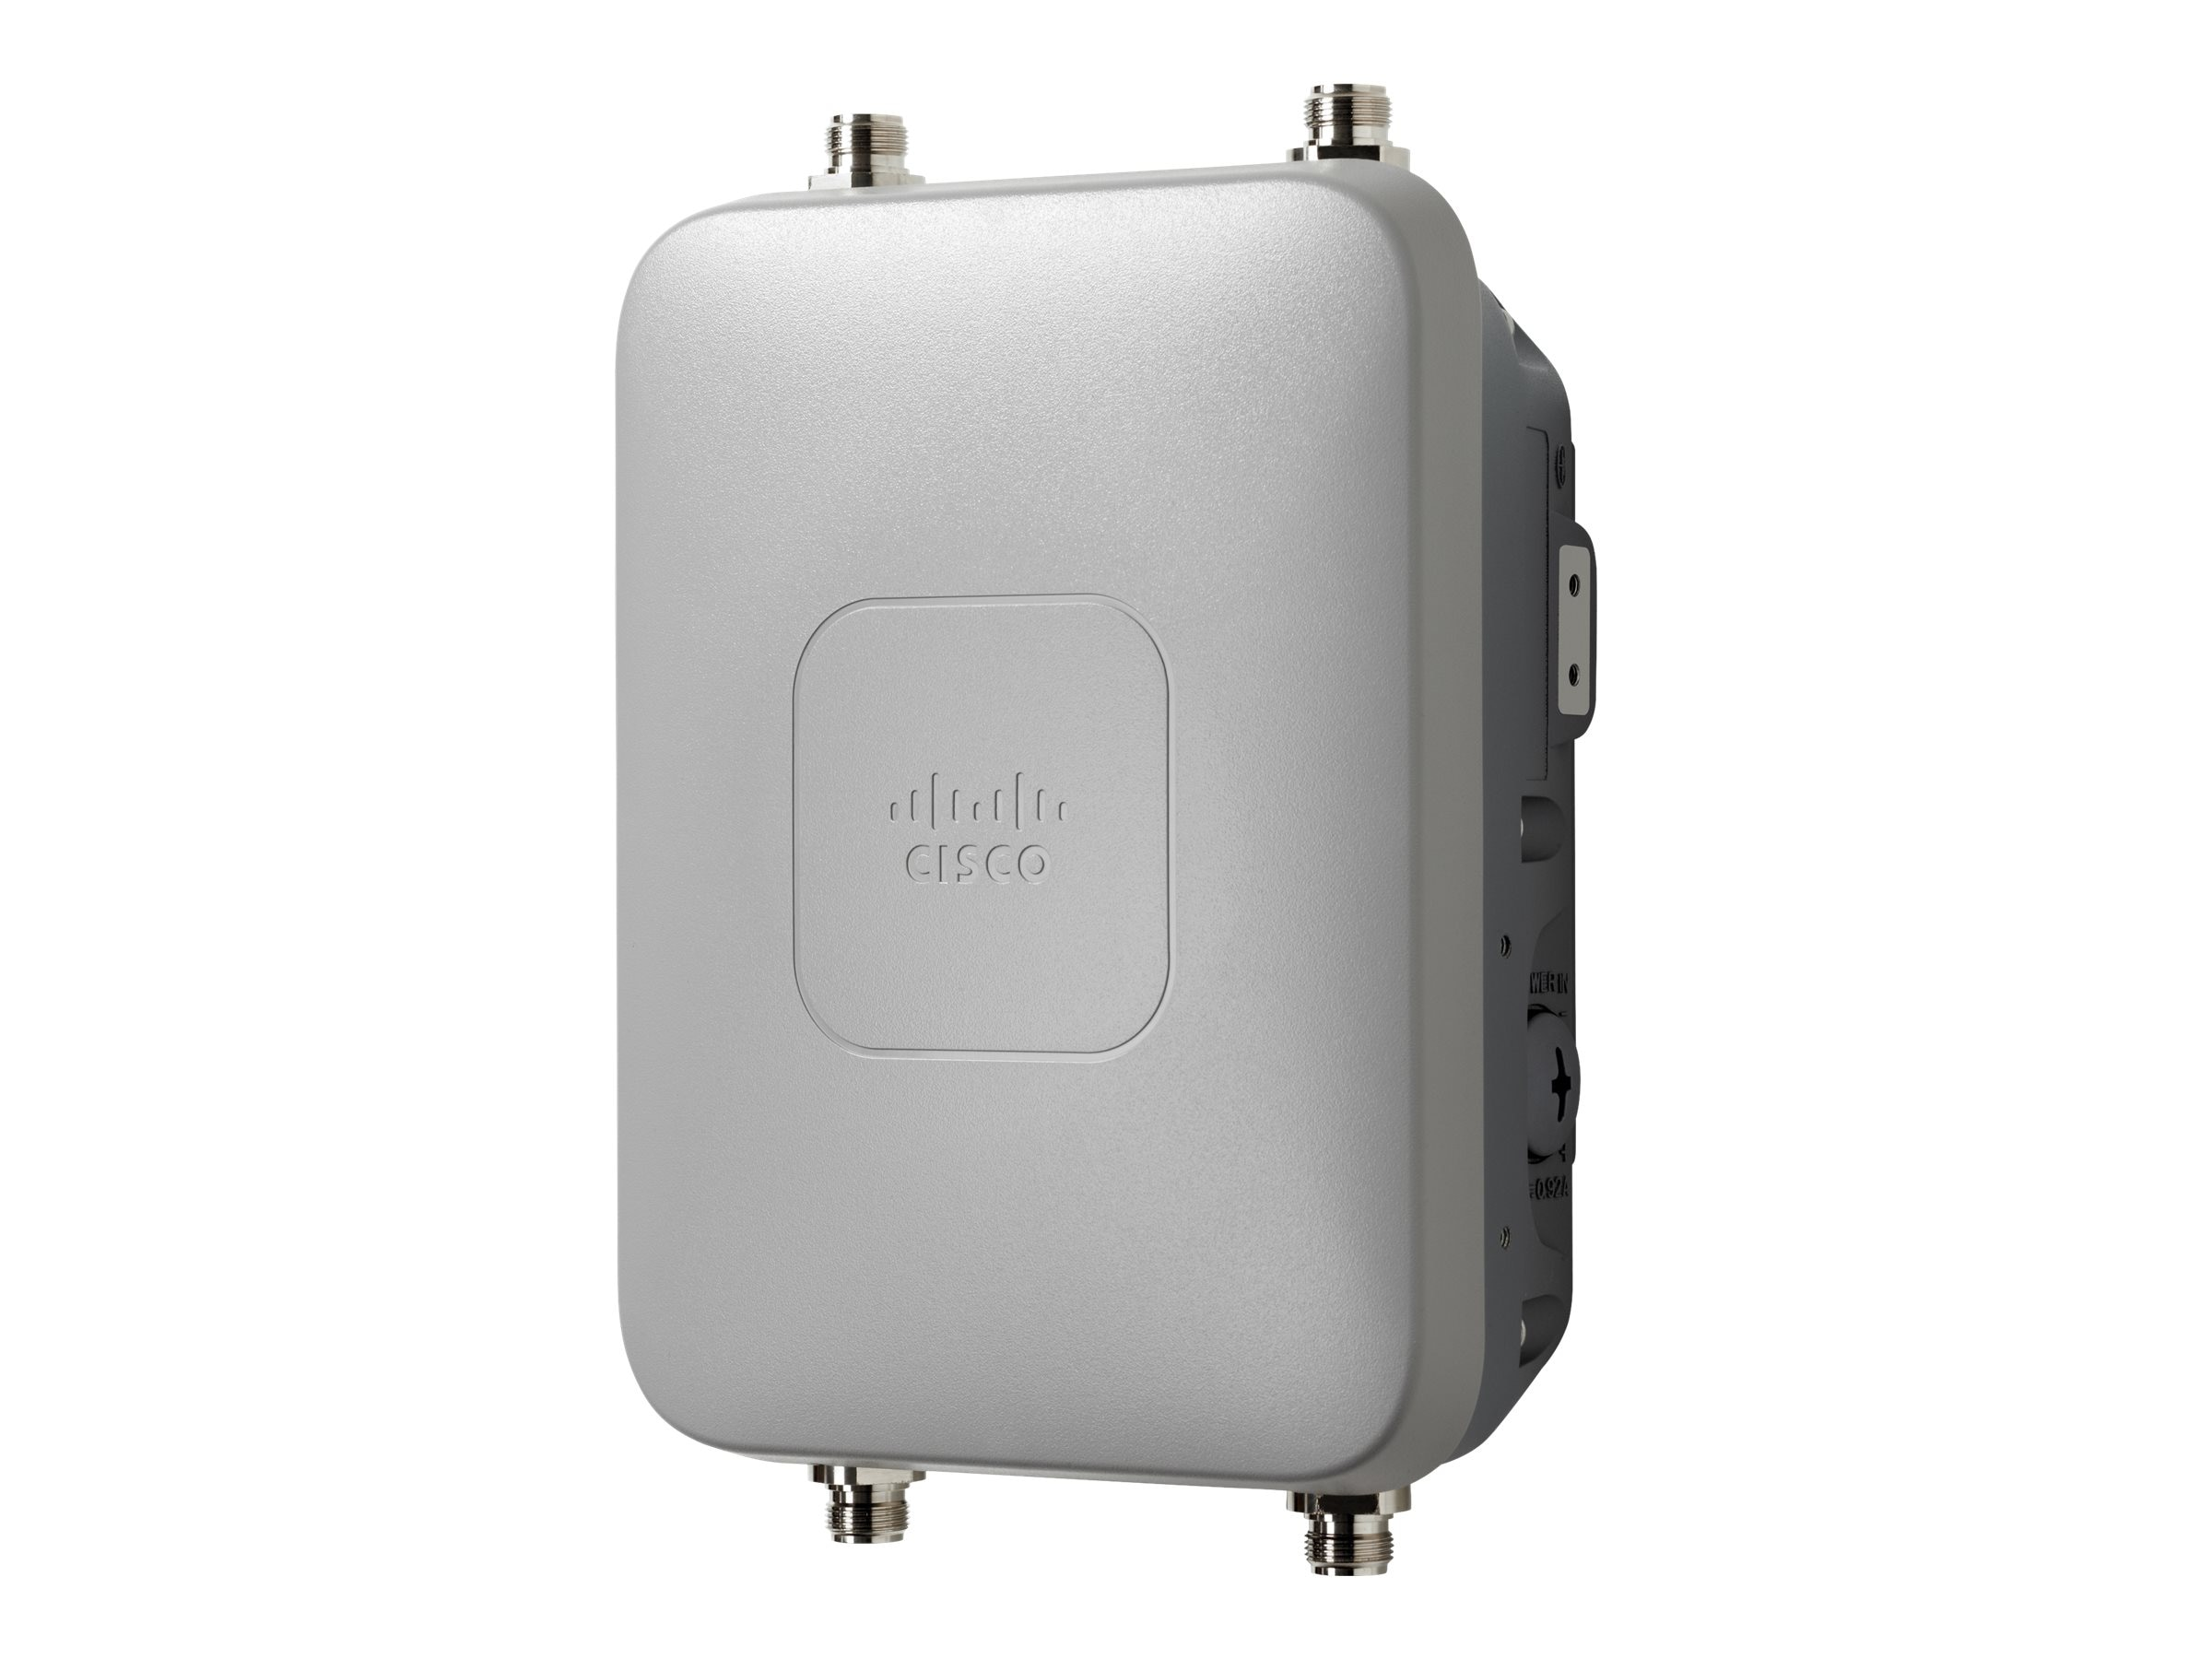 Cisco AIR-CAP1532E-Q-K9 Image 1